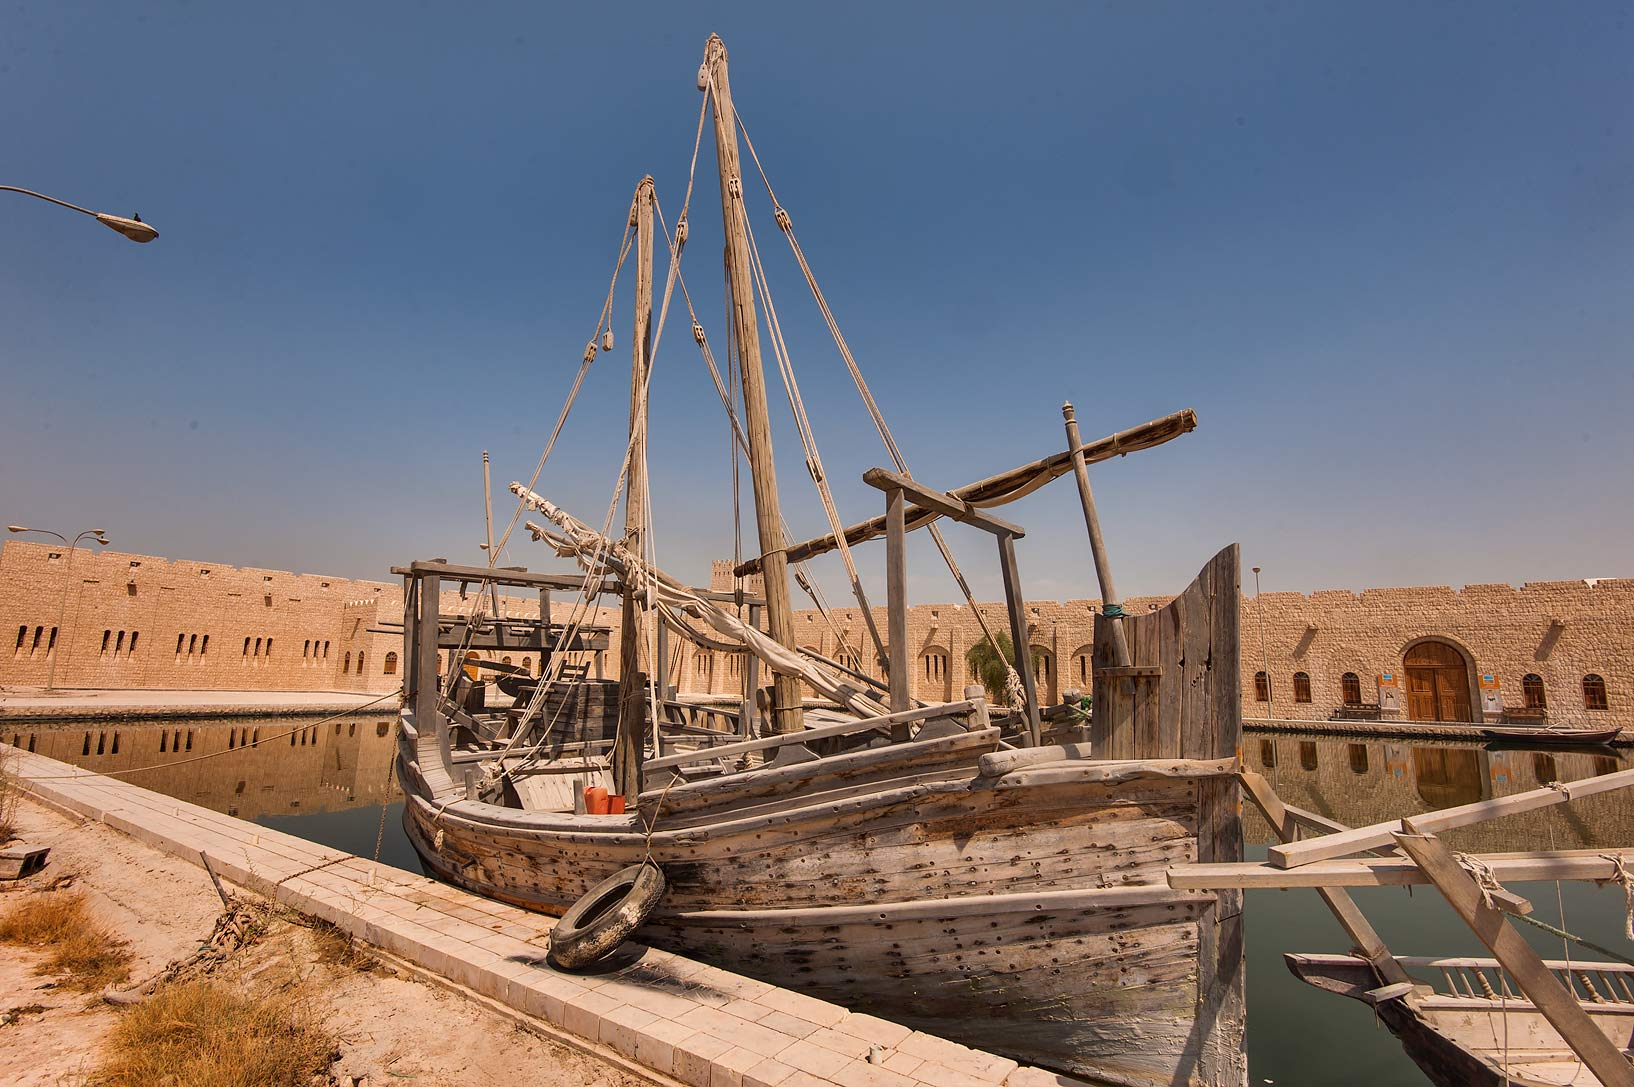 Traditional fishing boat in a pool near Sheikh...Museum near Al-Shahaniya. Doha, Qatar